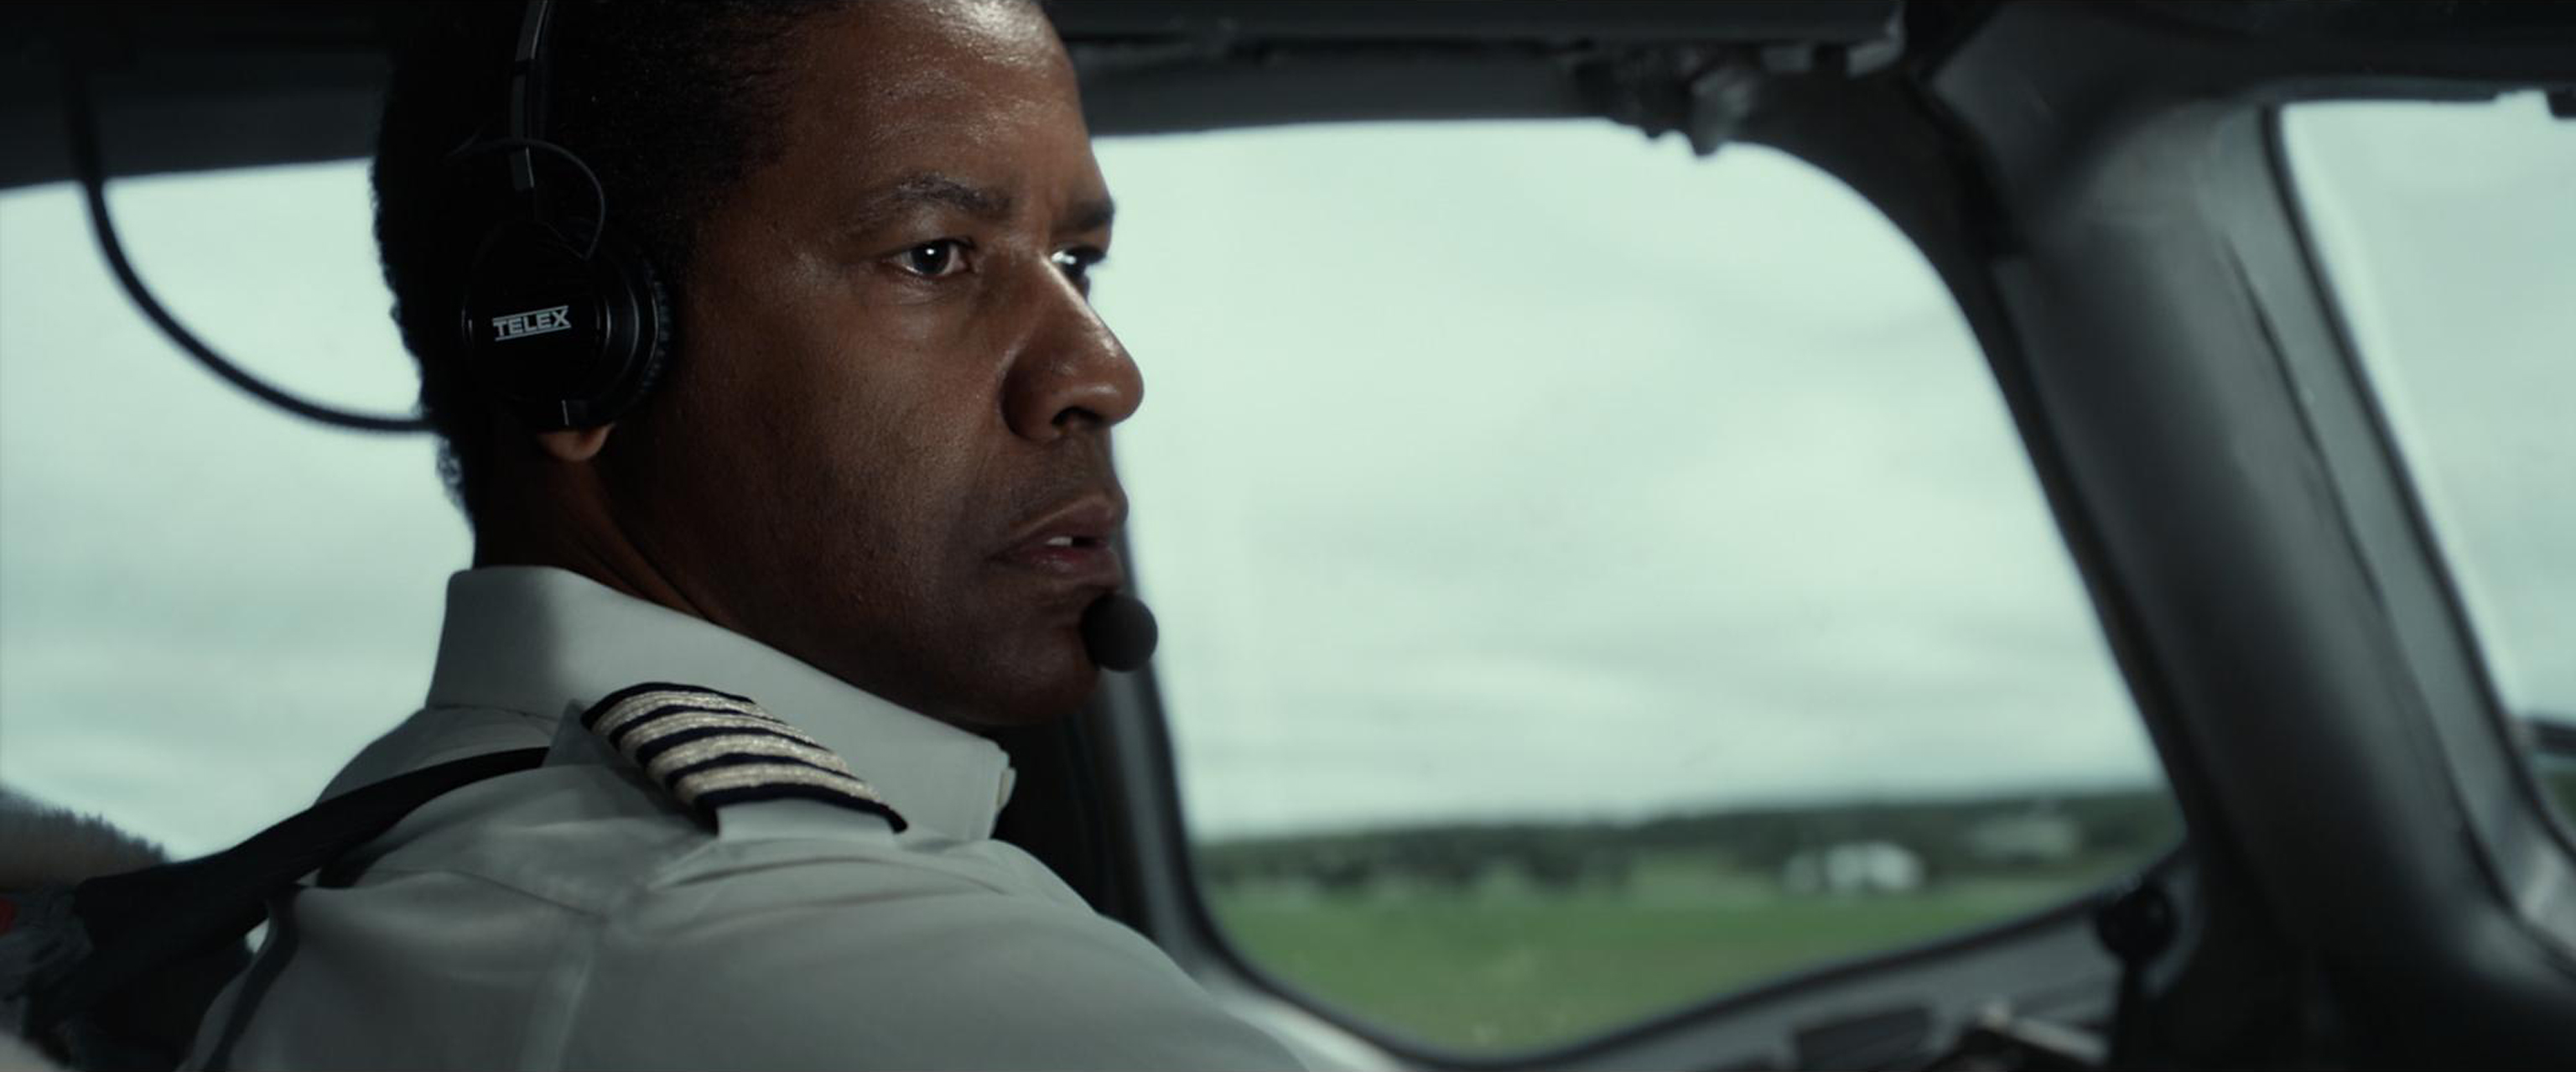 Denzel Washington is Whip Whitaker in FLIGHT,  from Paramount Pictures. F-FF-008